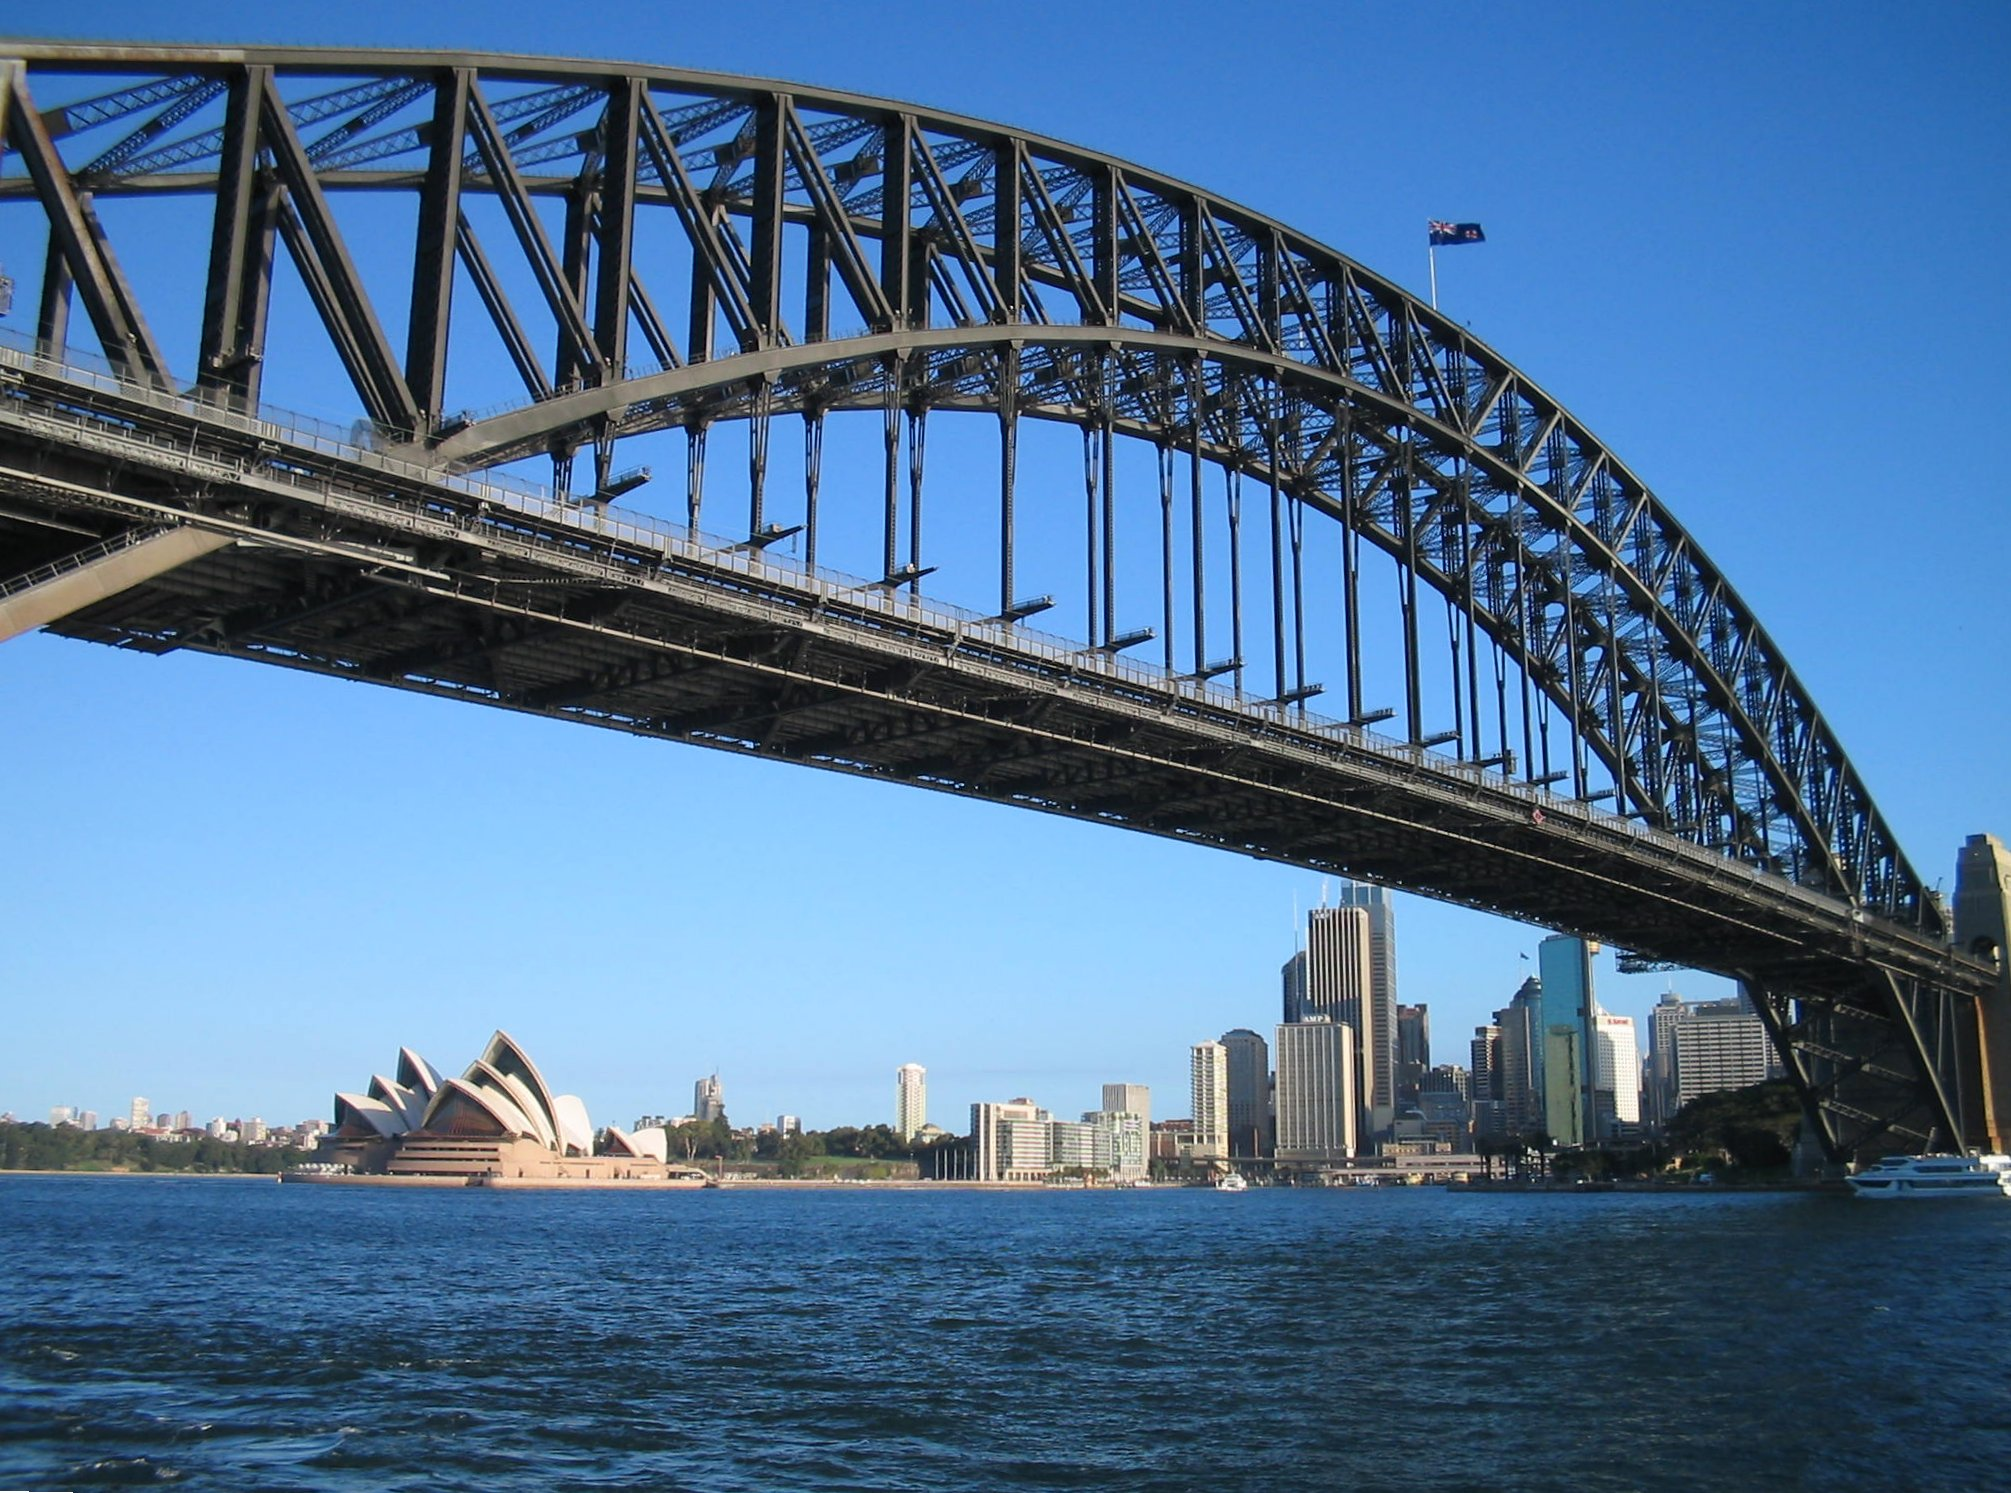 Sydney Harbour Bridge by http://commons.wikimedia.org/wiki/User:Pau